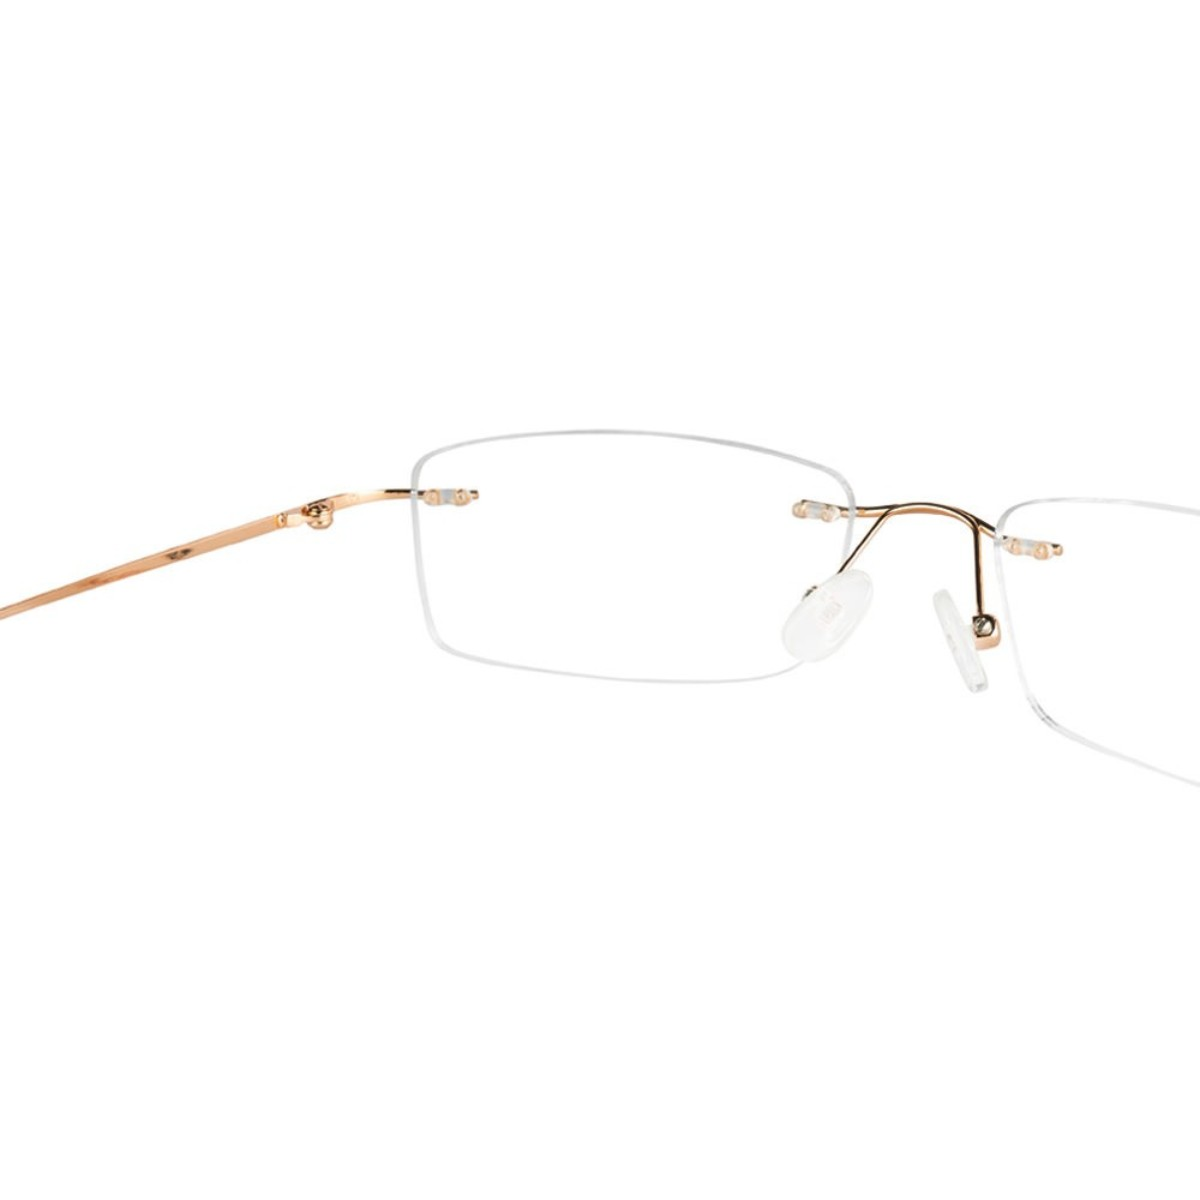 Gold Rimless Computer Glasses with Anti Glare Coating